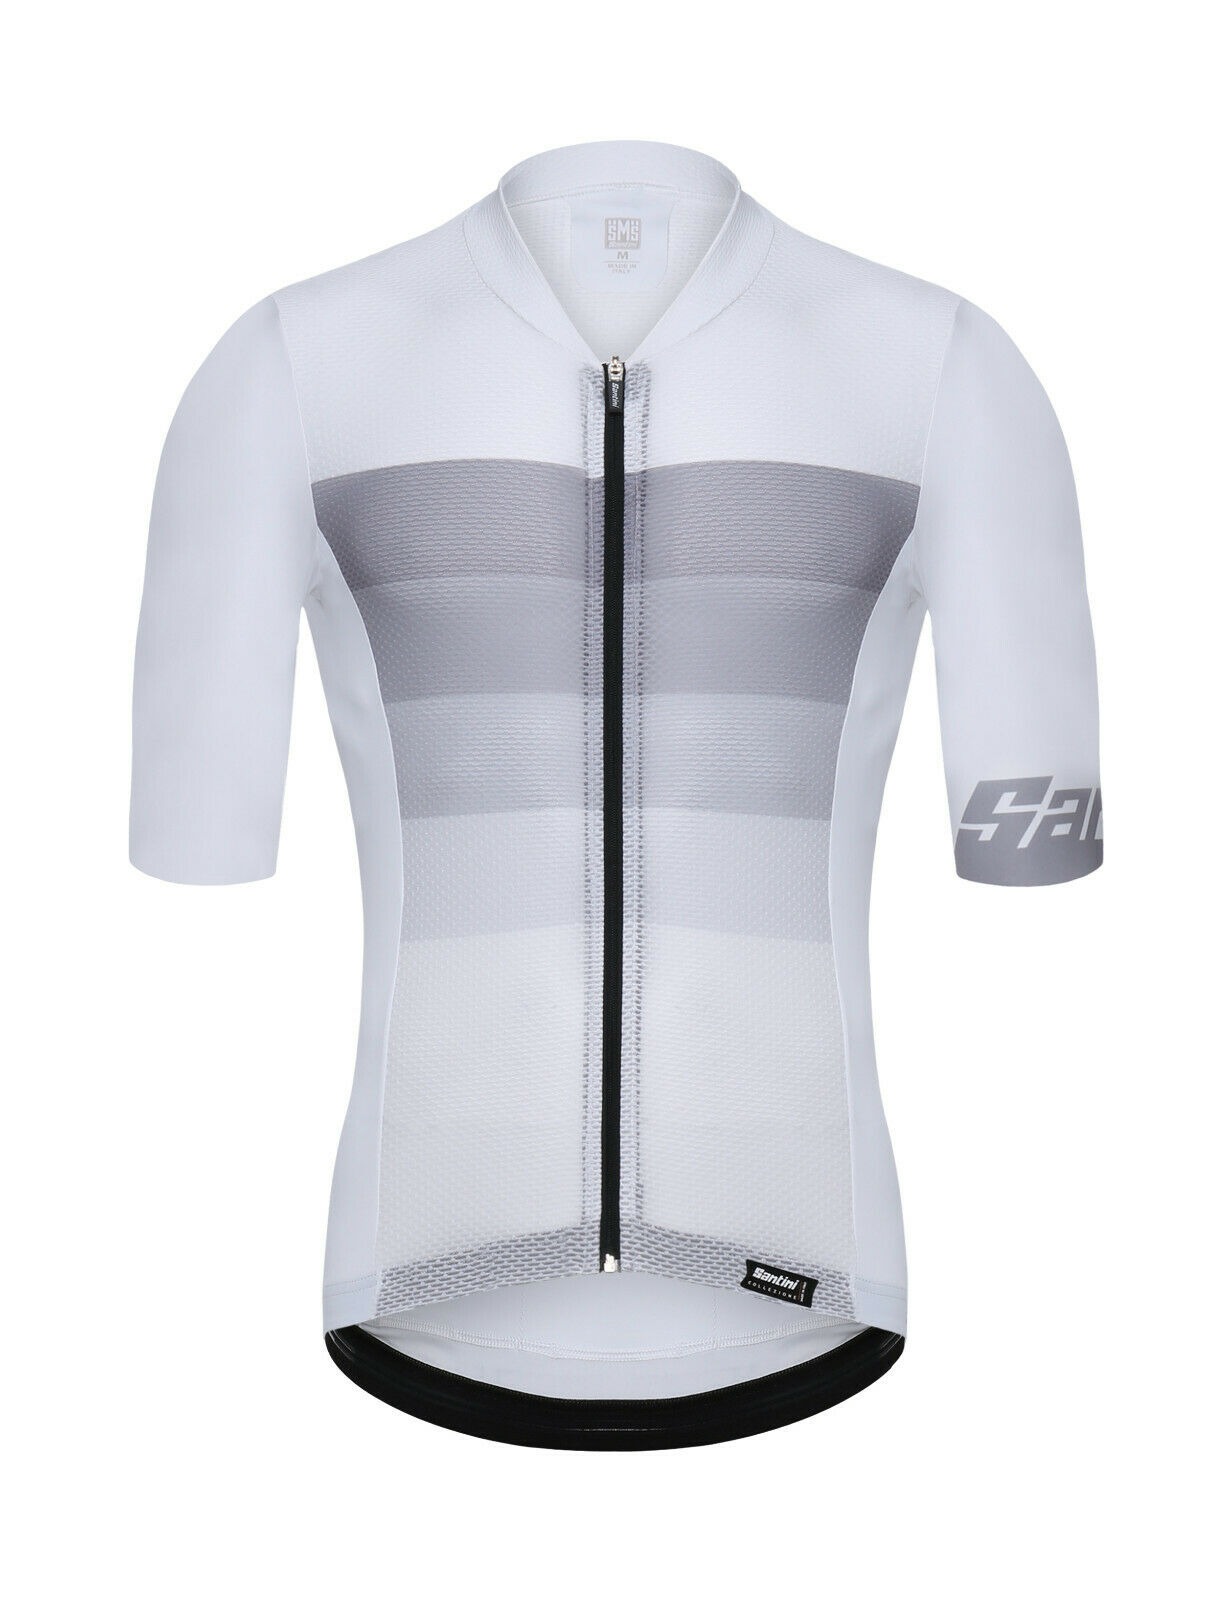 2019 Men's Tono Cycling Jersey - White - by Santini - Made in